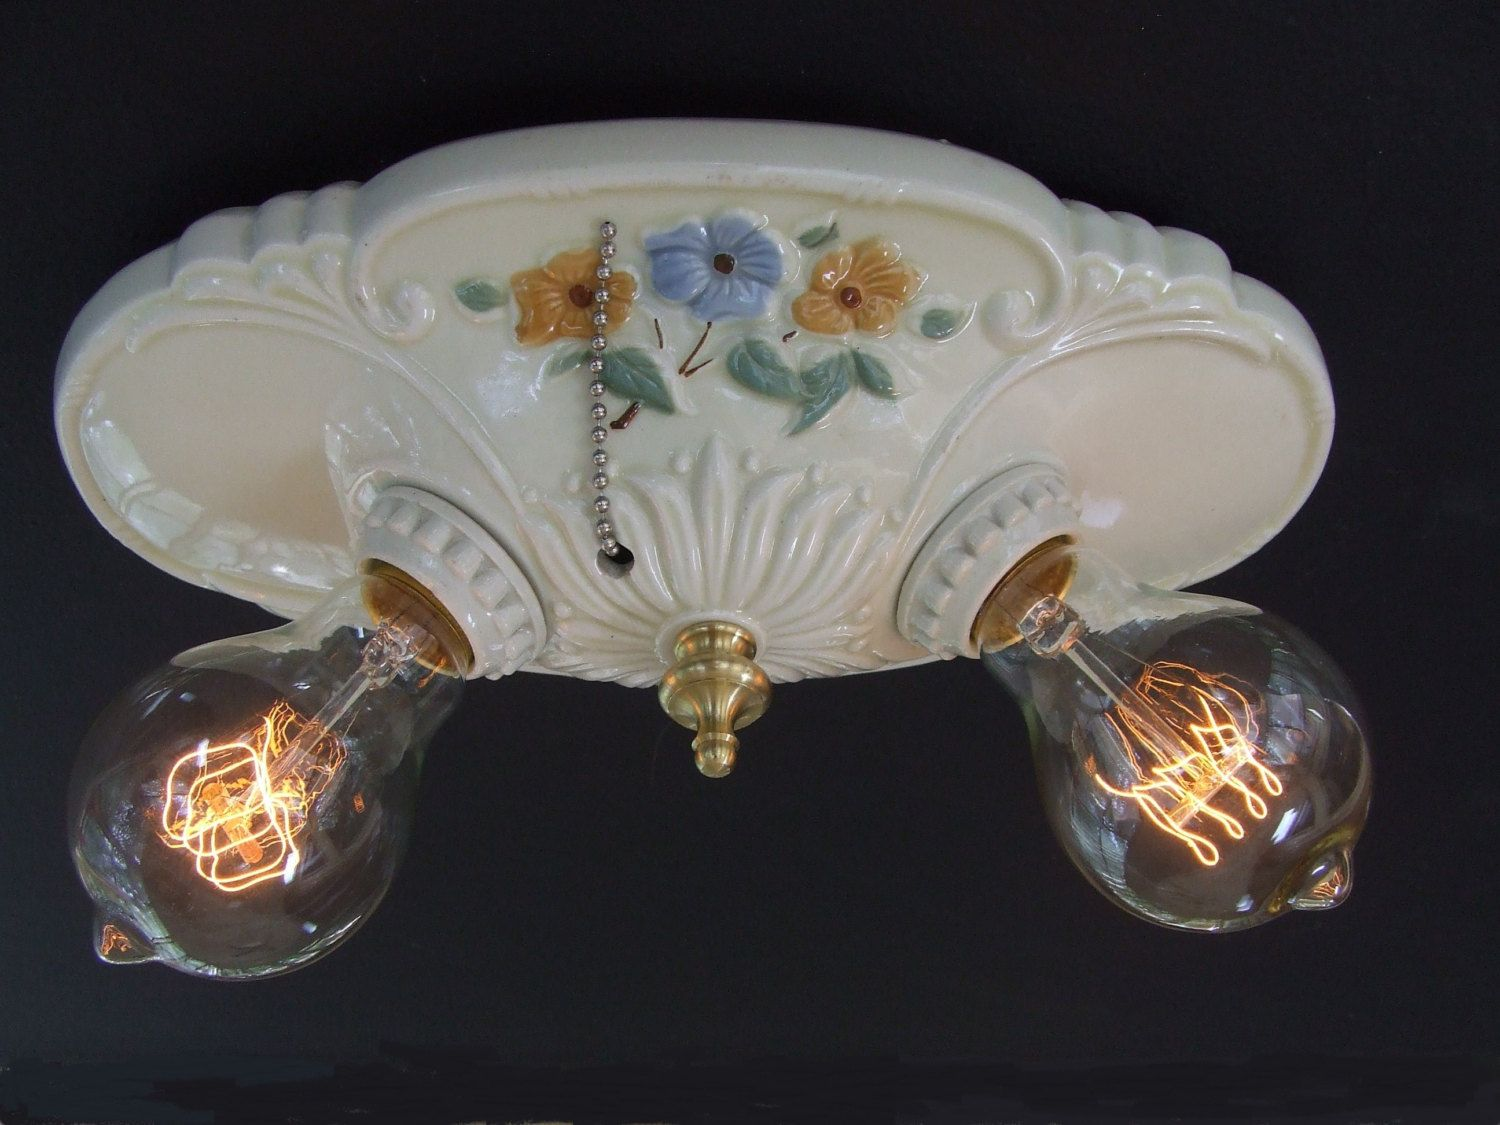 Vintage Porcelain Flush Mount Ceiling Light Fixture Rewired, Ceramic Pull  Chain Bathroom Light Fixture